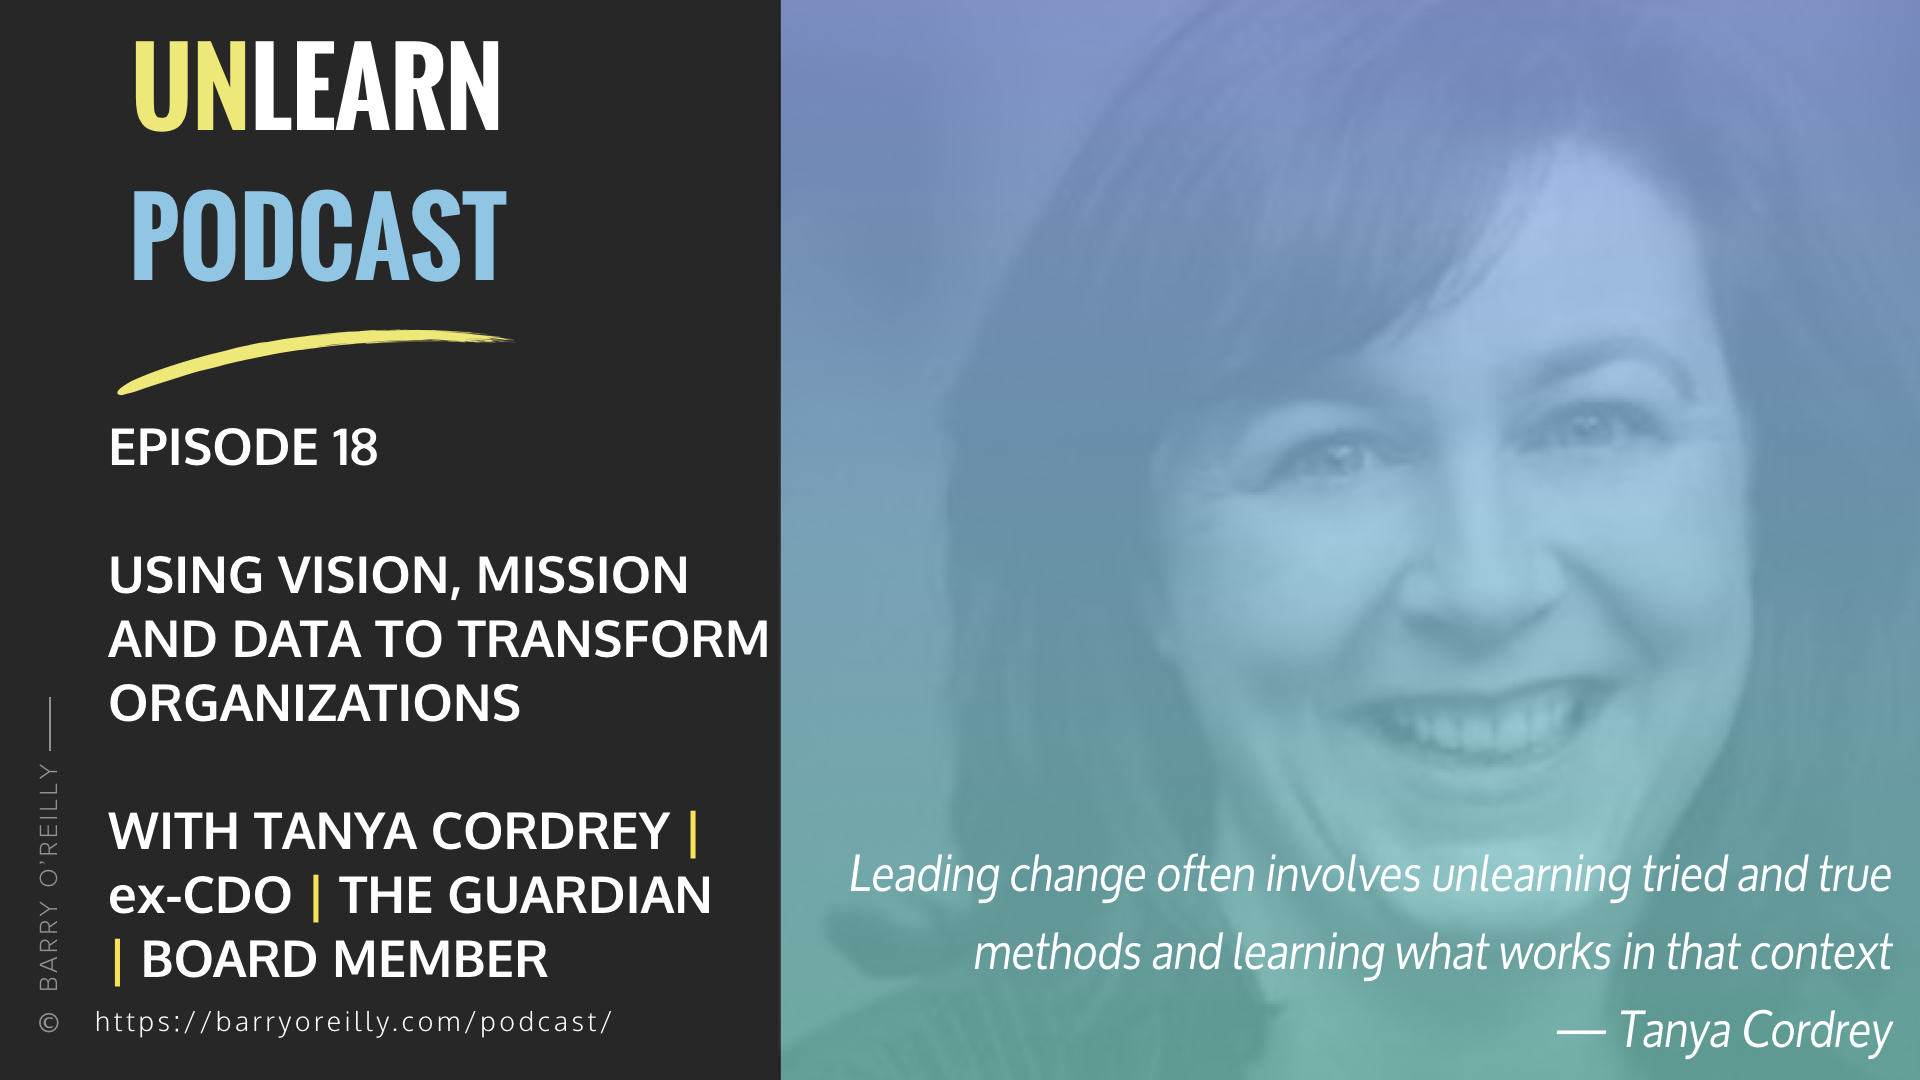 Vision, Mission and Data To Transform Organizations with Tanya Cordrey